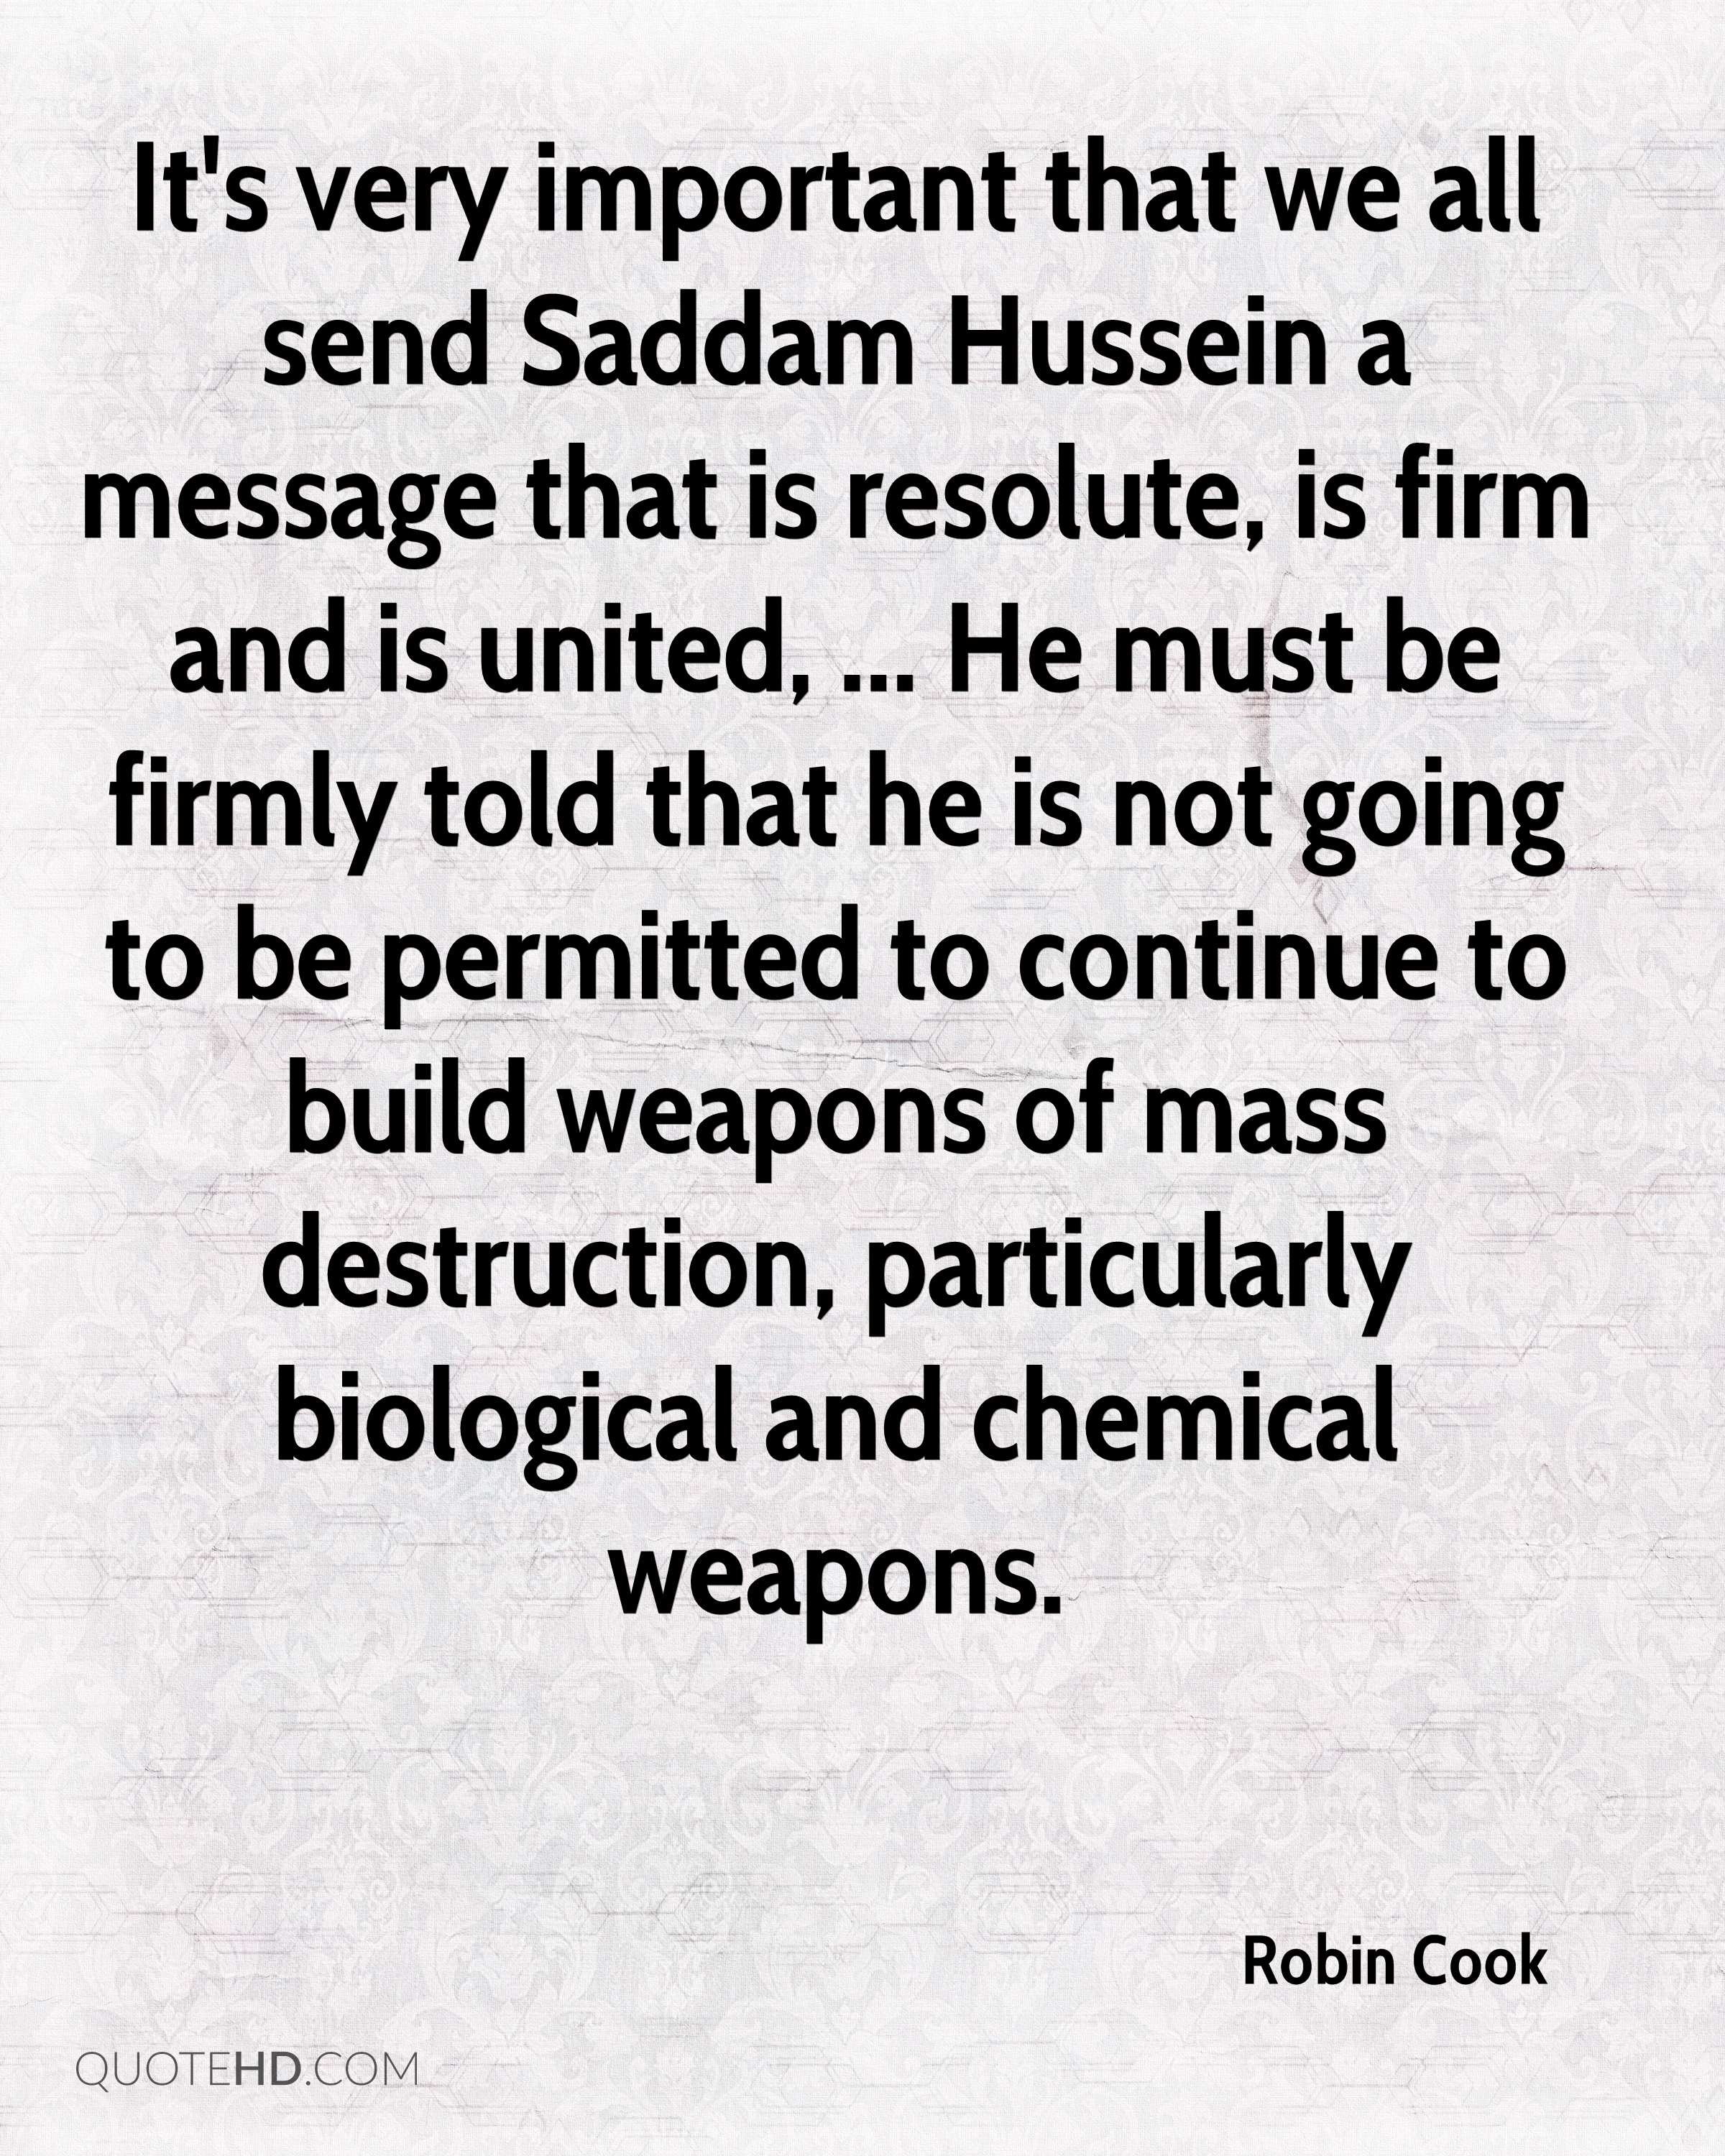 It's very important that we all send Saddam Hussein a message that is resolute, is firm and is united, ... He must be firmly told that he is not going to be permitted to continue to build weapons of mass destruction, particularly biological and chemical weapons.